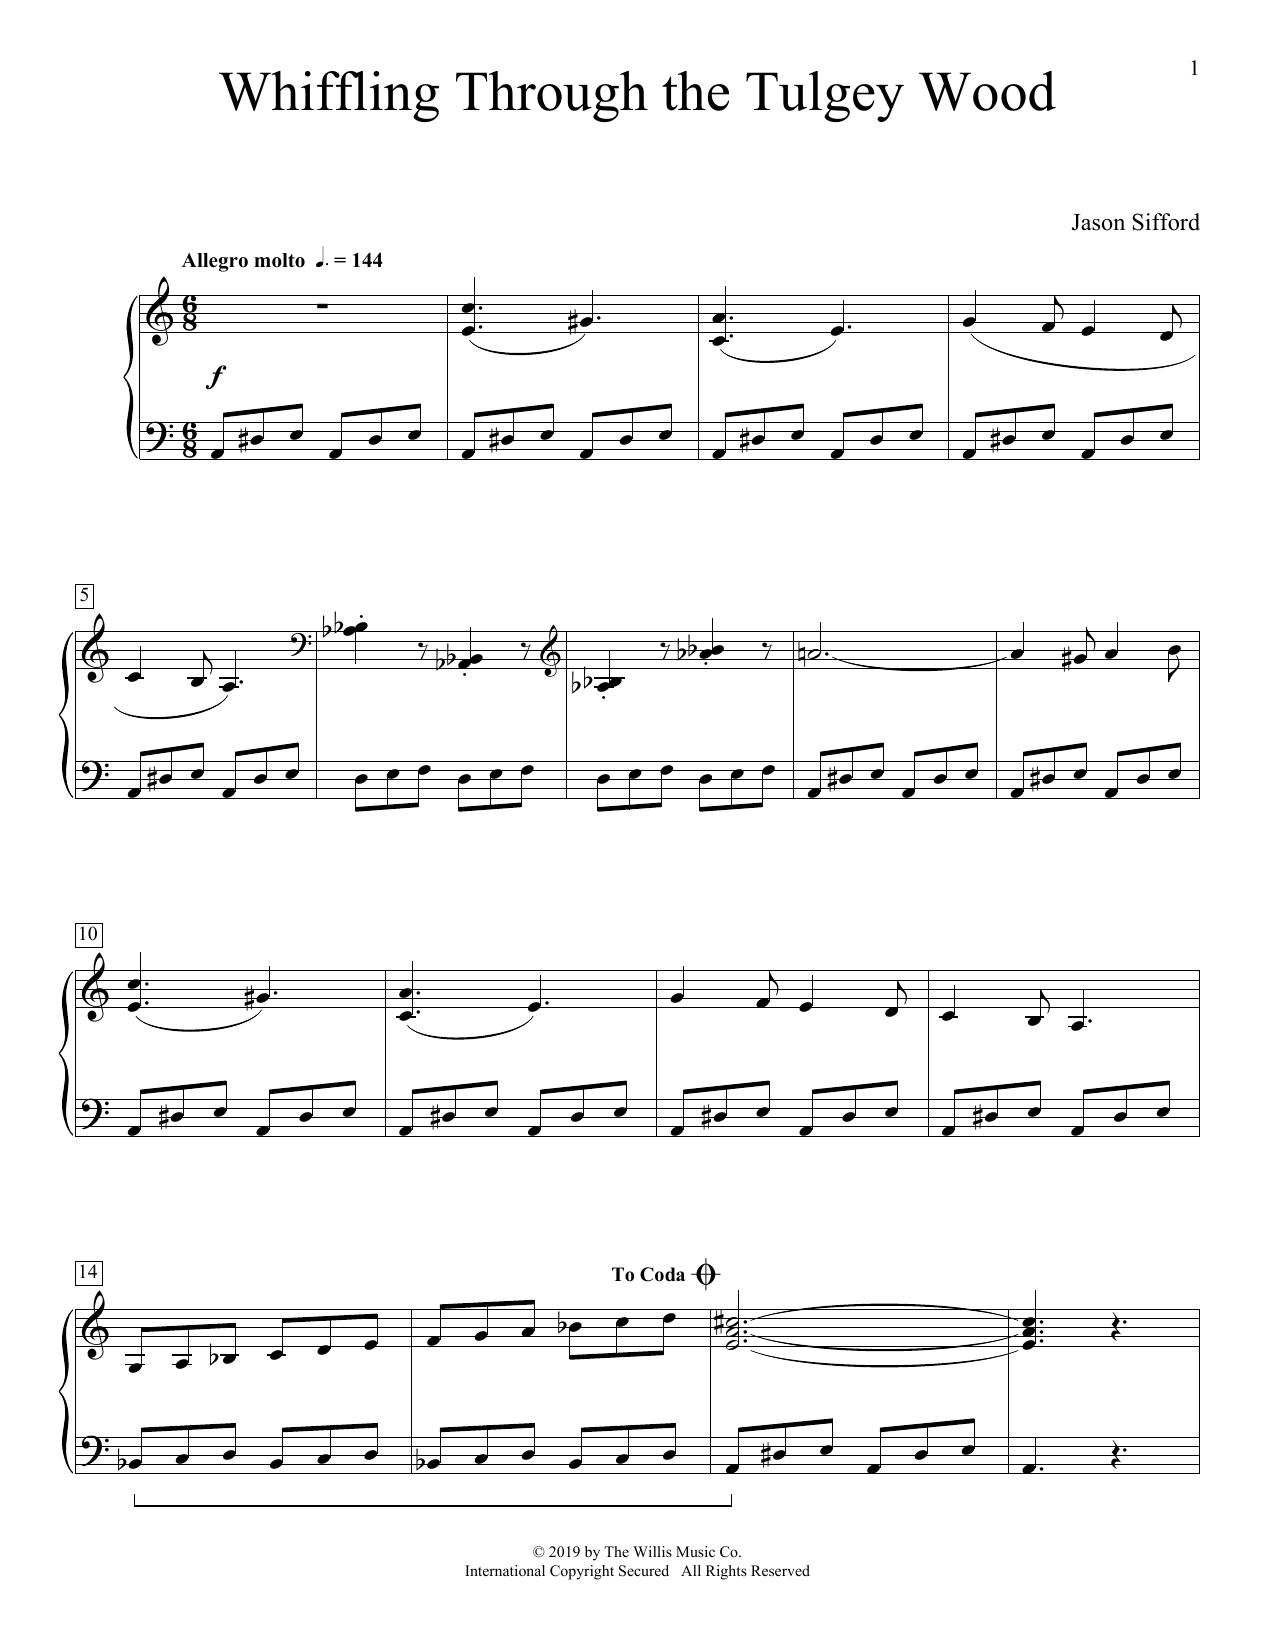 Jason Sifford Whiffling Through The Tulgey Wood sheet music preview music notes and score for Educational Piano including 2 page(s)